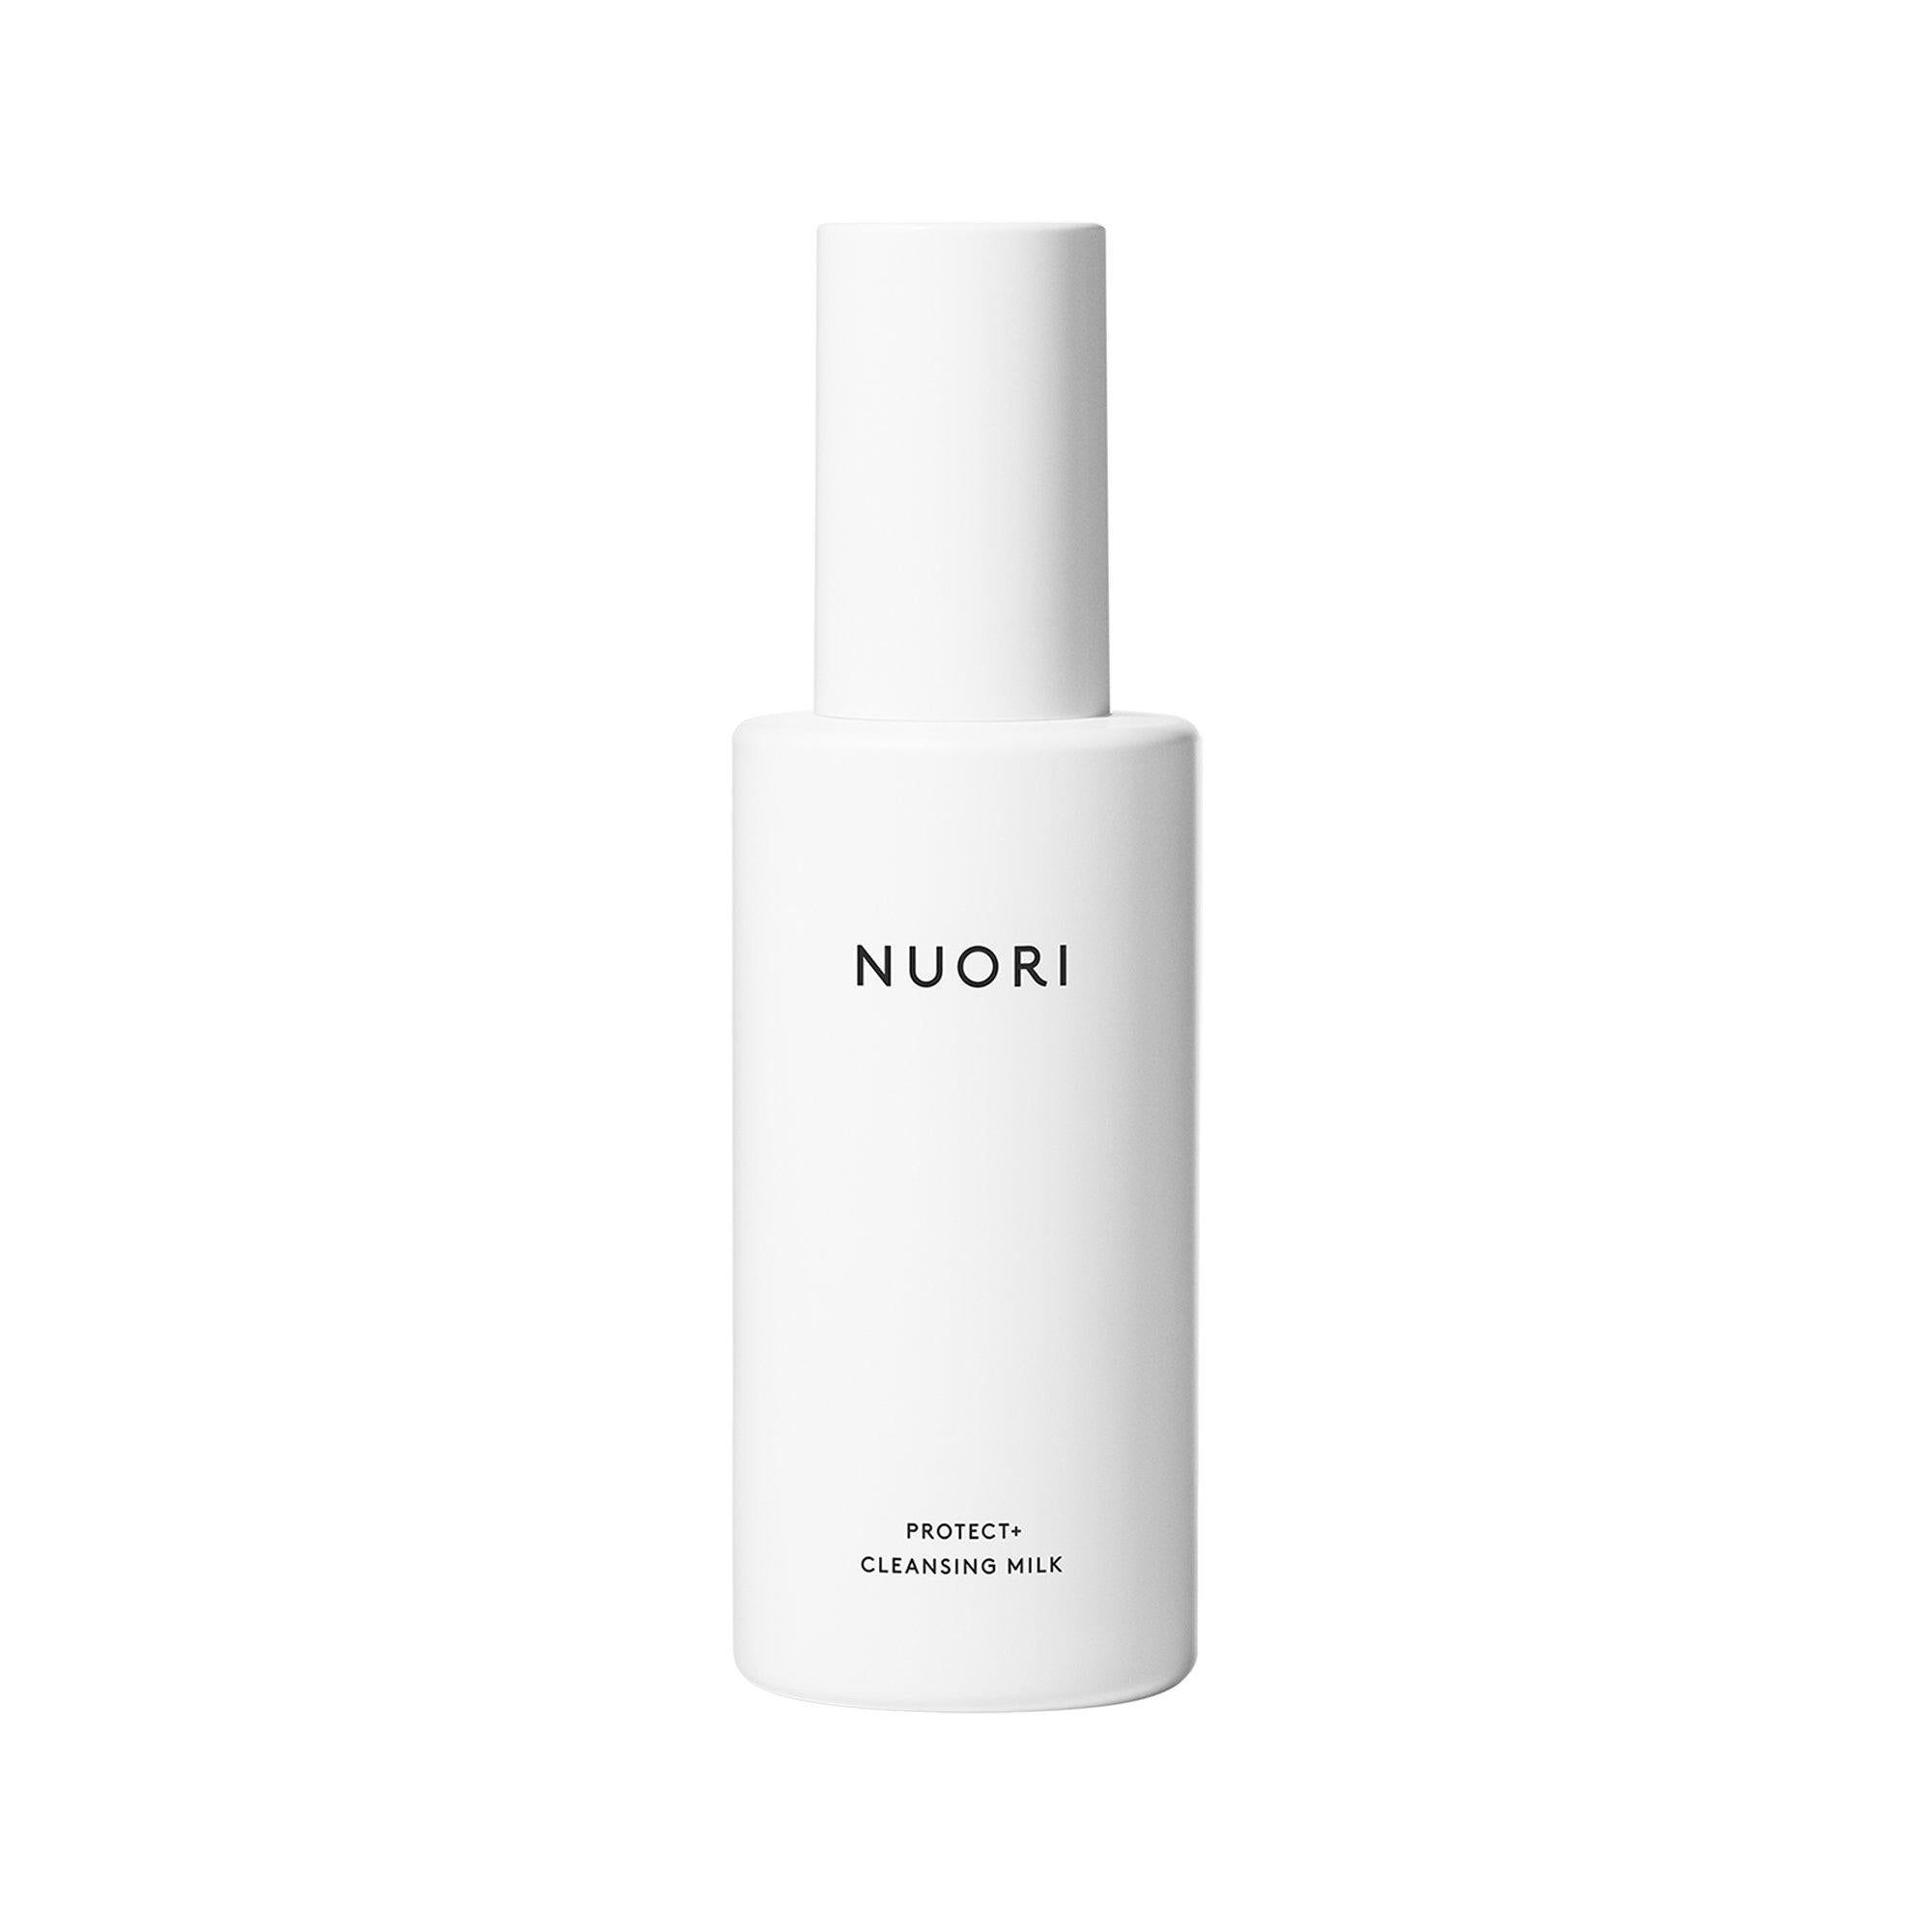 (Echantillons) Protect + Cleansing Milk (Echantillons) Protect + Cleansing Milk - Nuori